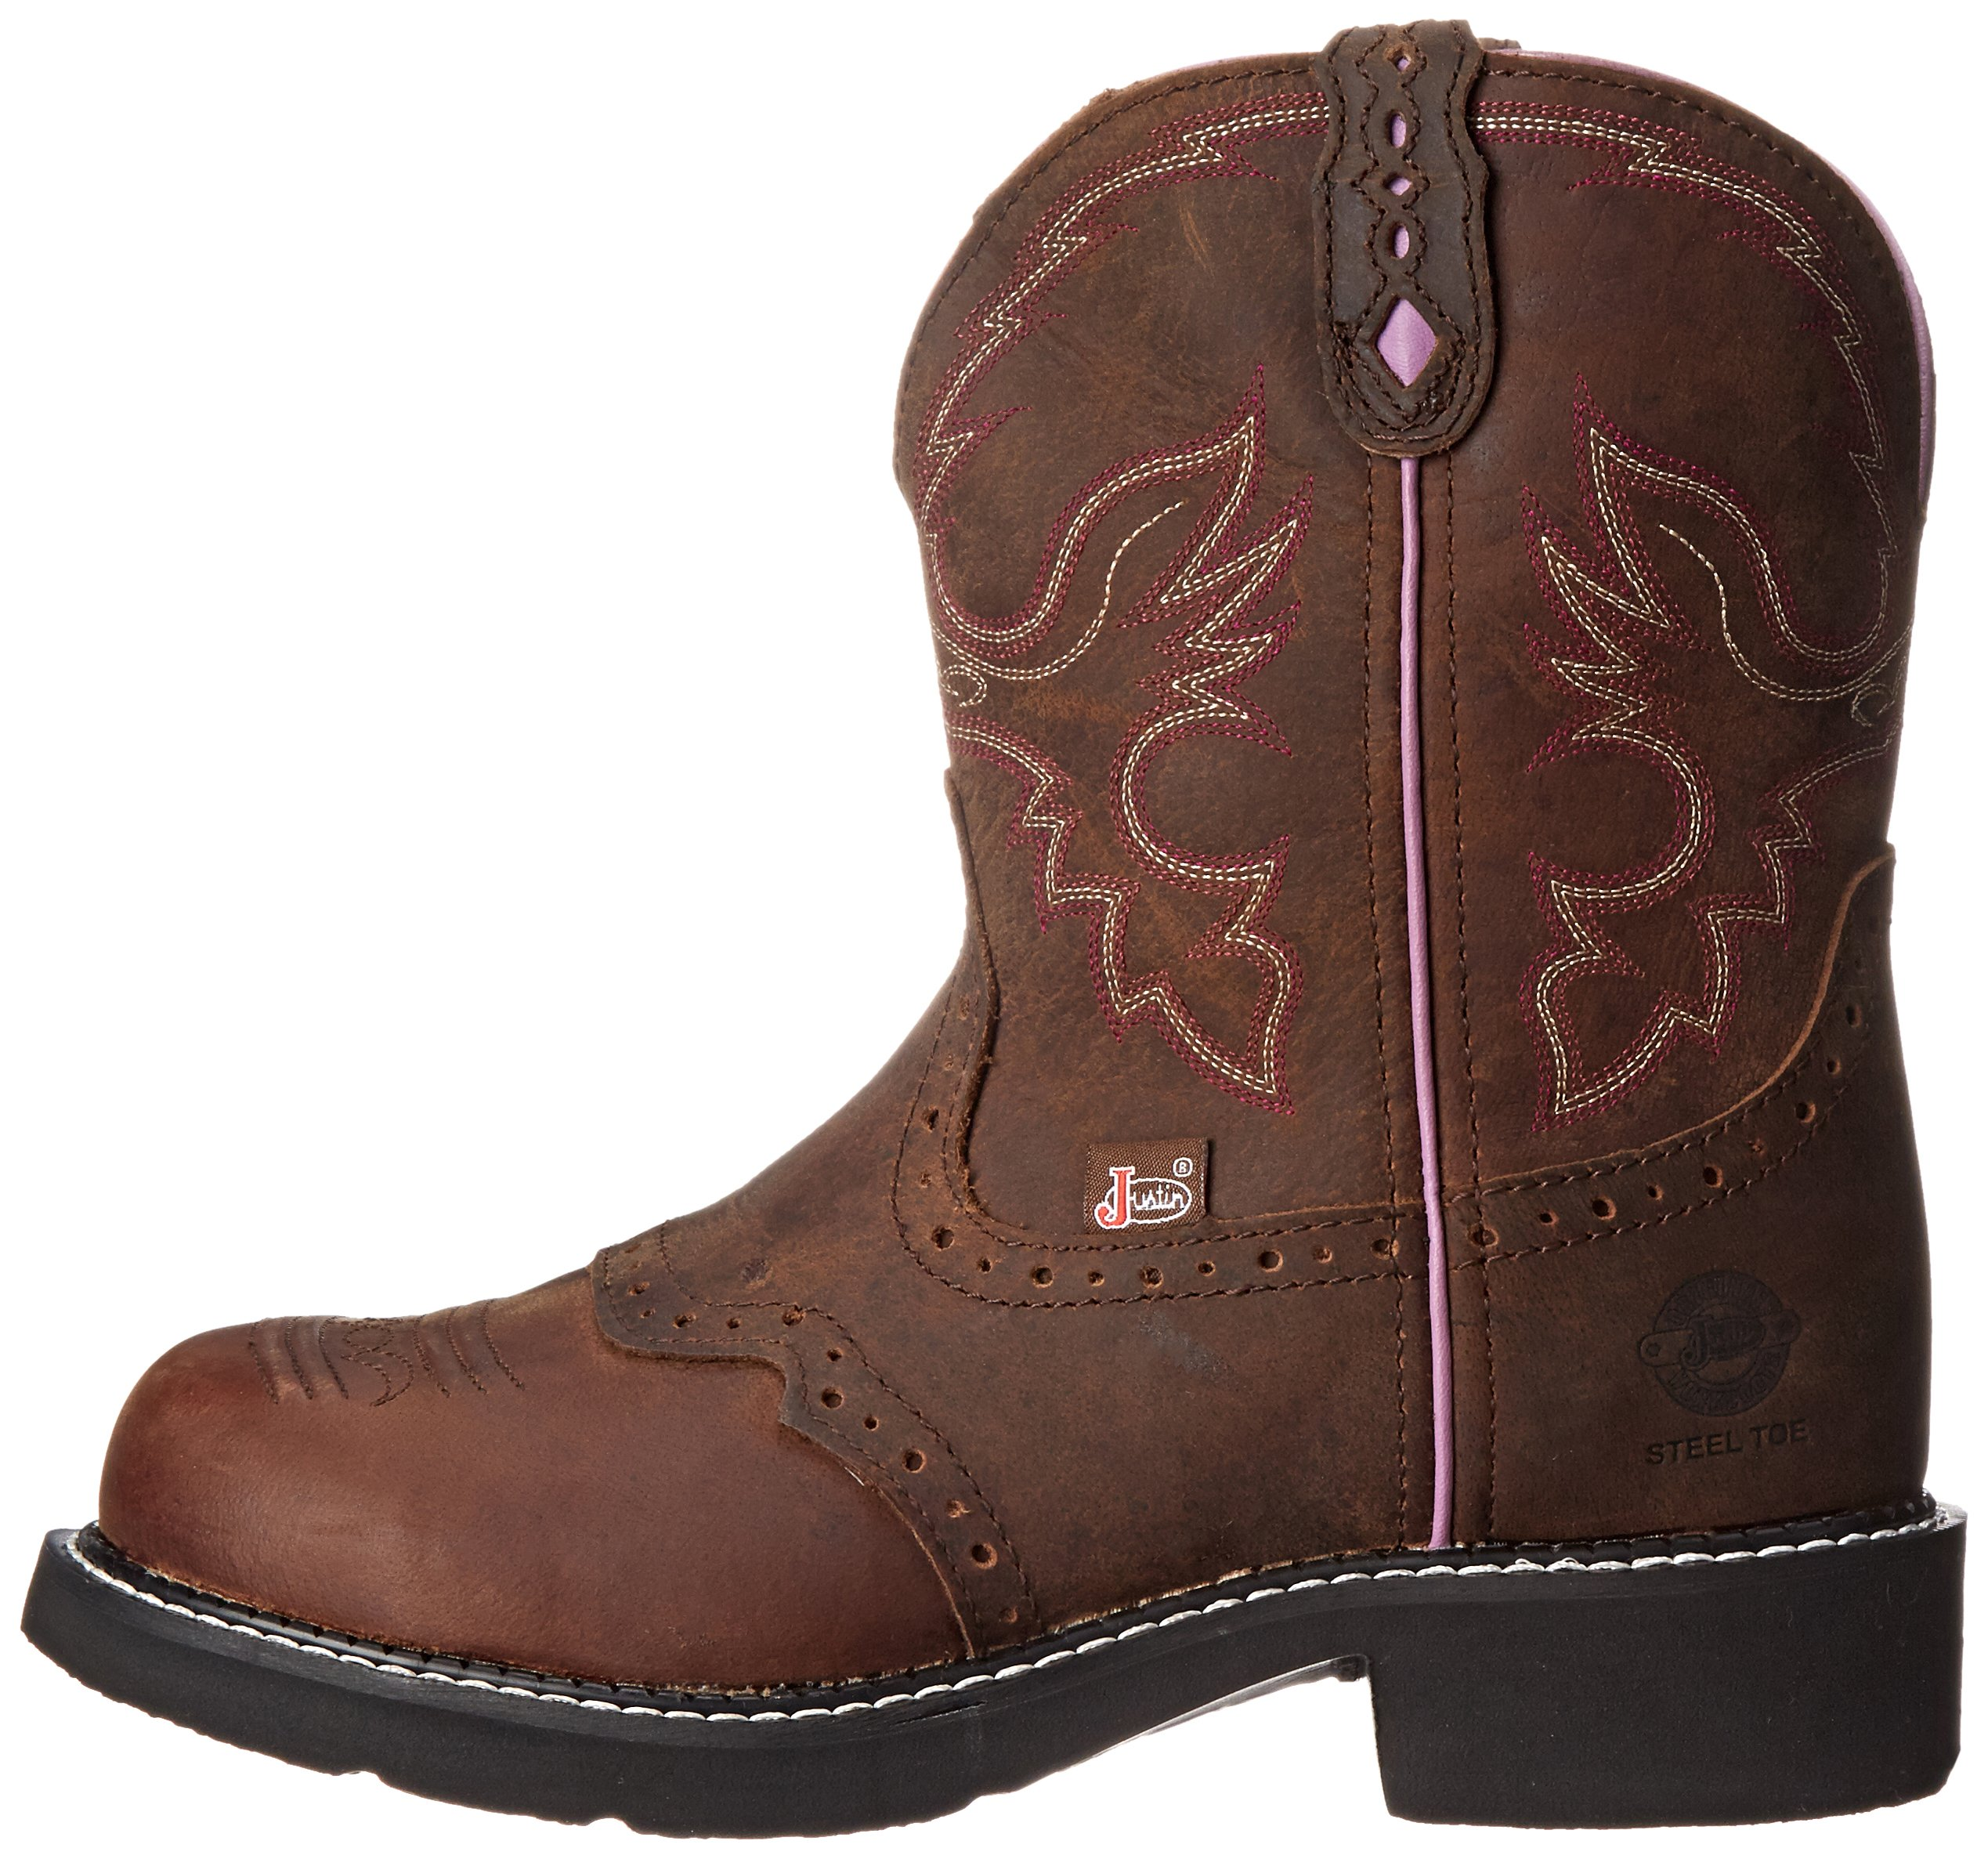 Justin Boots Women's Gypsy Collection 8'' Steel Toe,Aged Bark,6B by Justin Boots (Image #5)